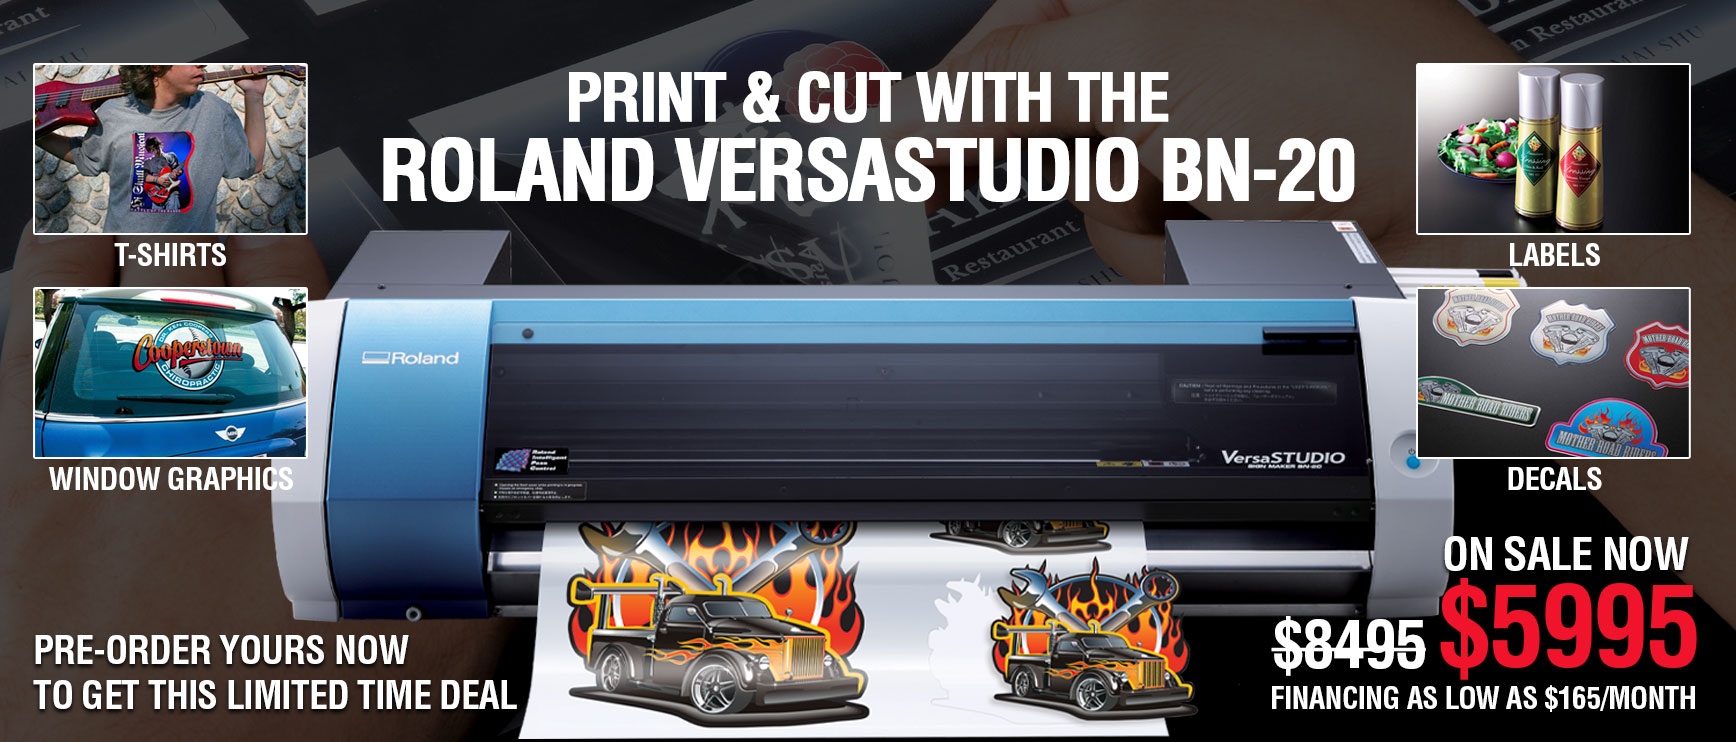 Print & Cut With The Roland VersaStudio BN-20